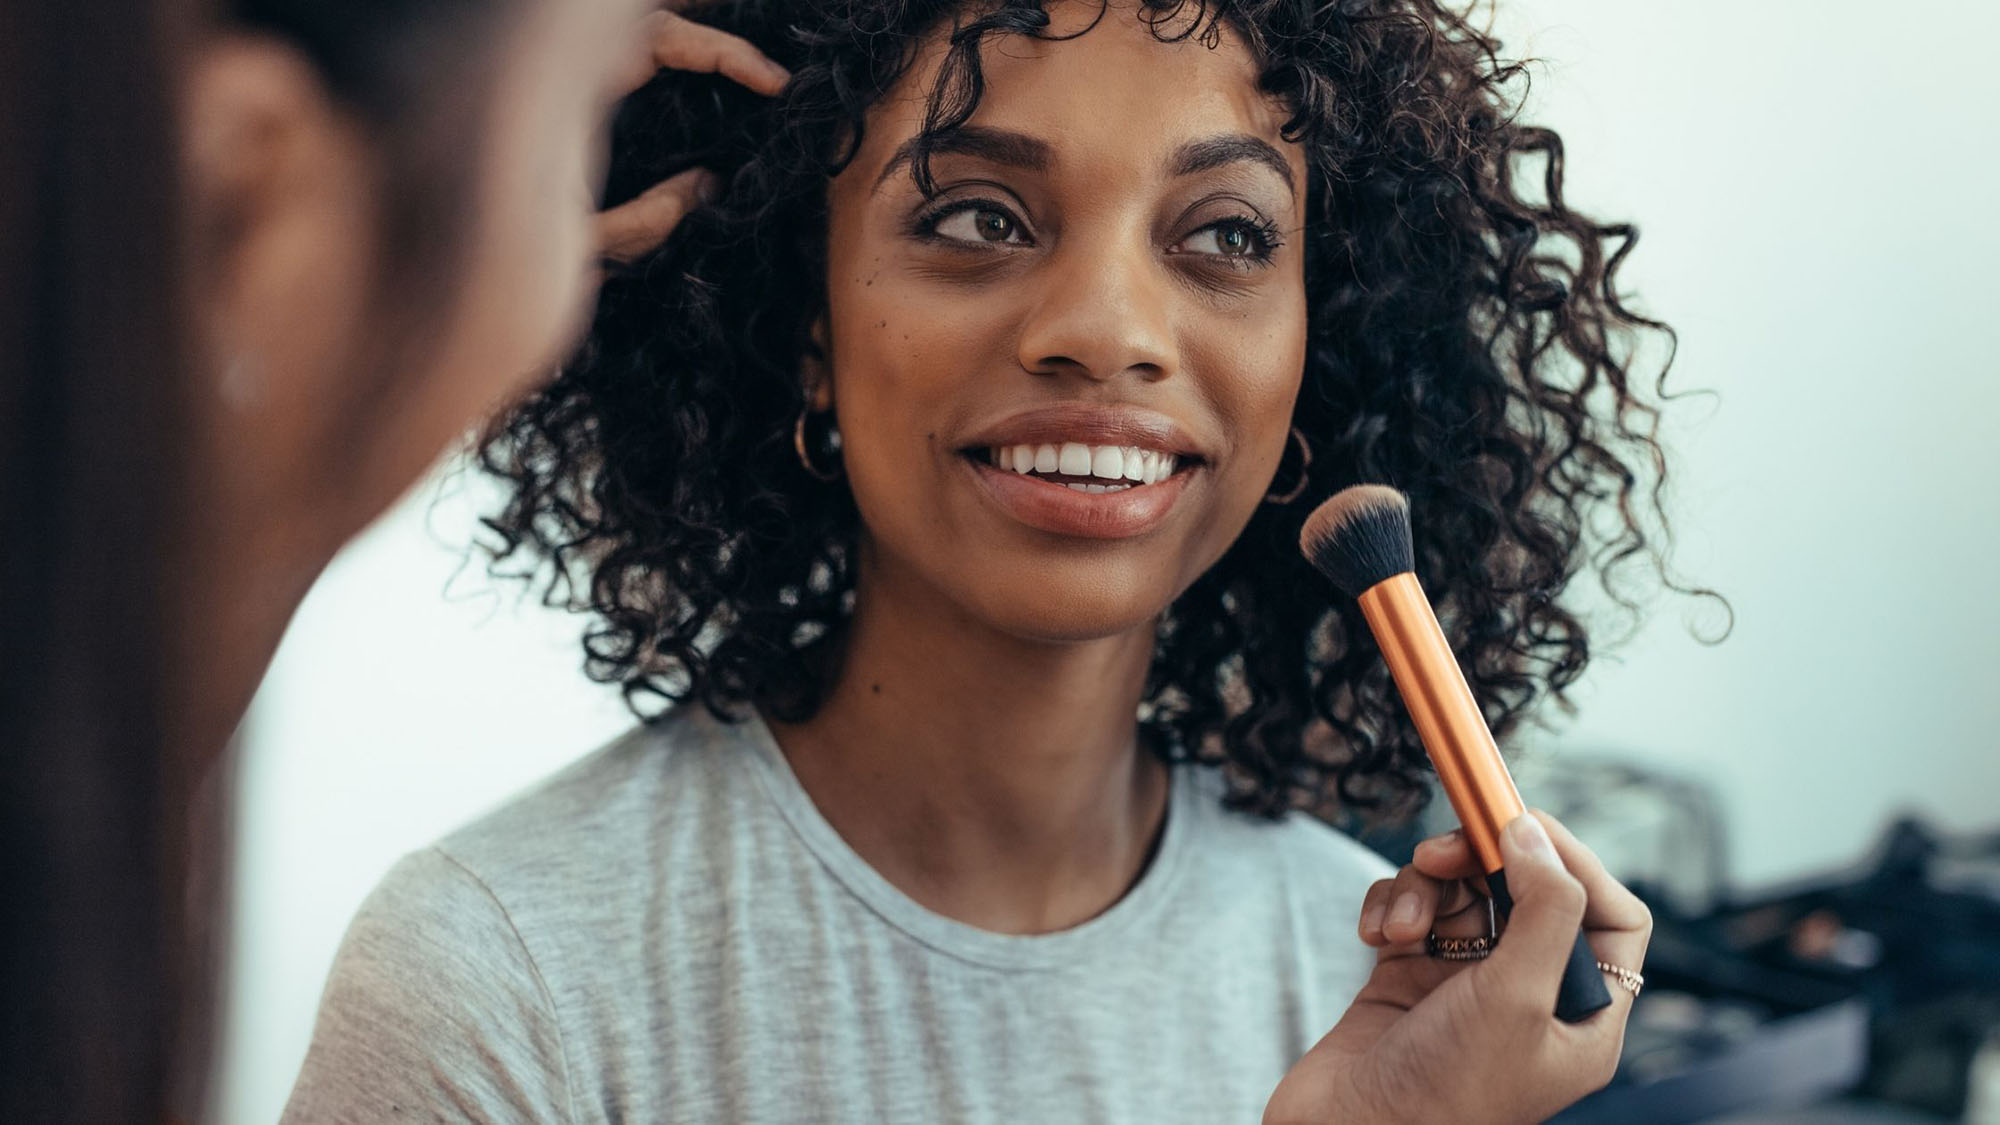 Makeup and hair class in Florence